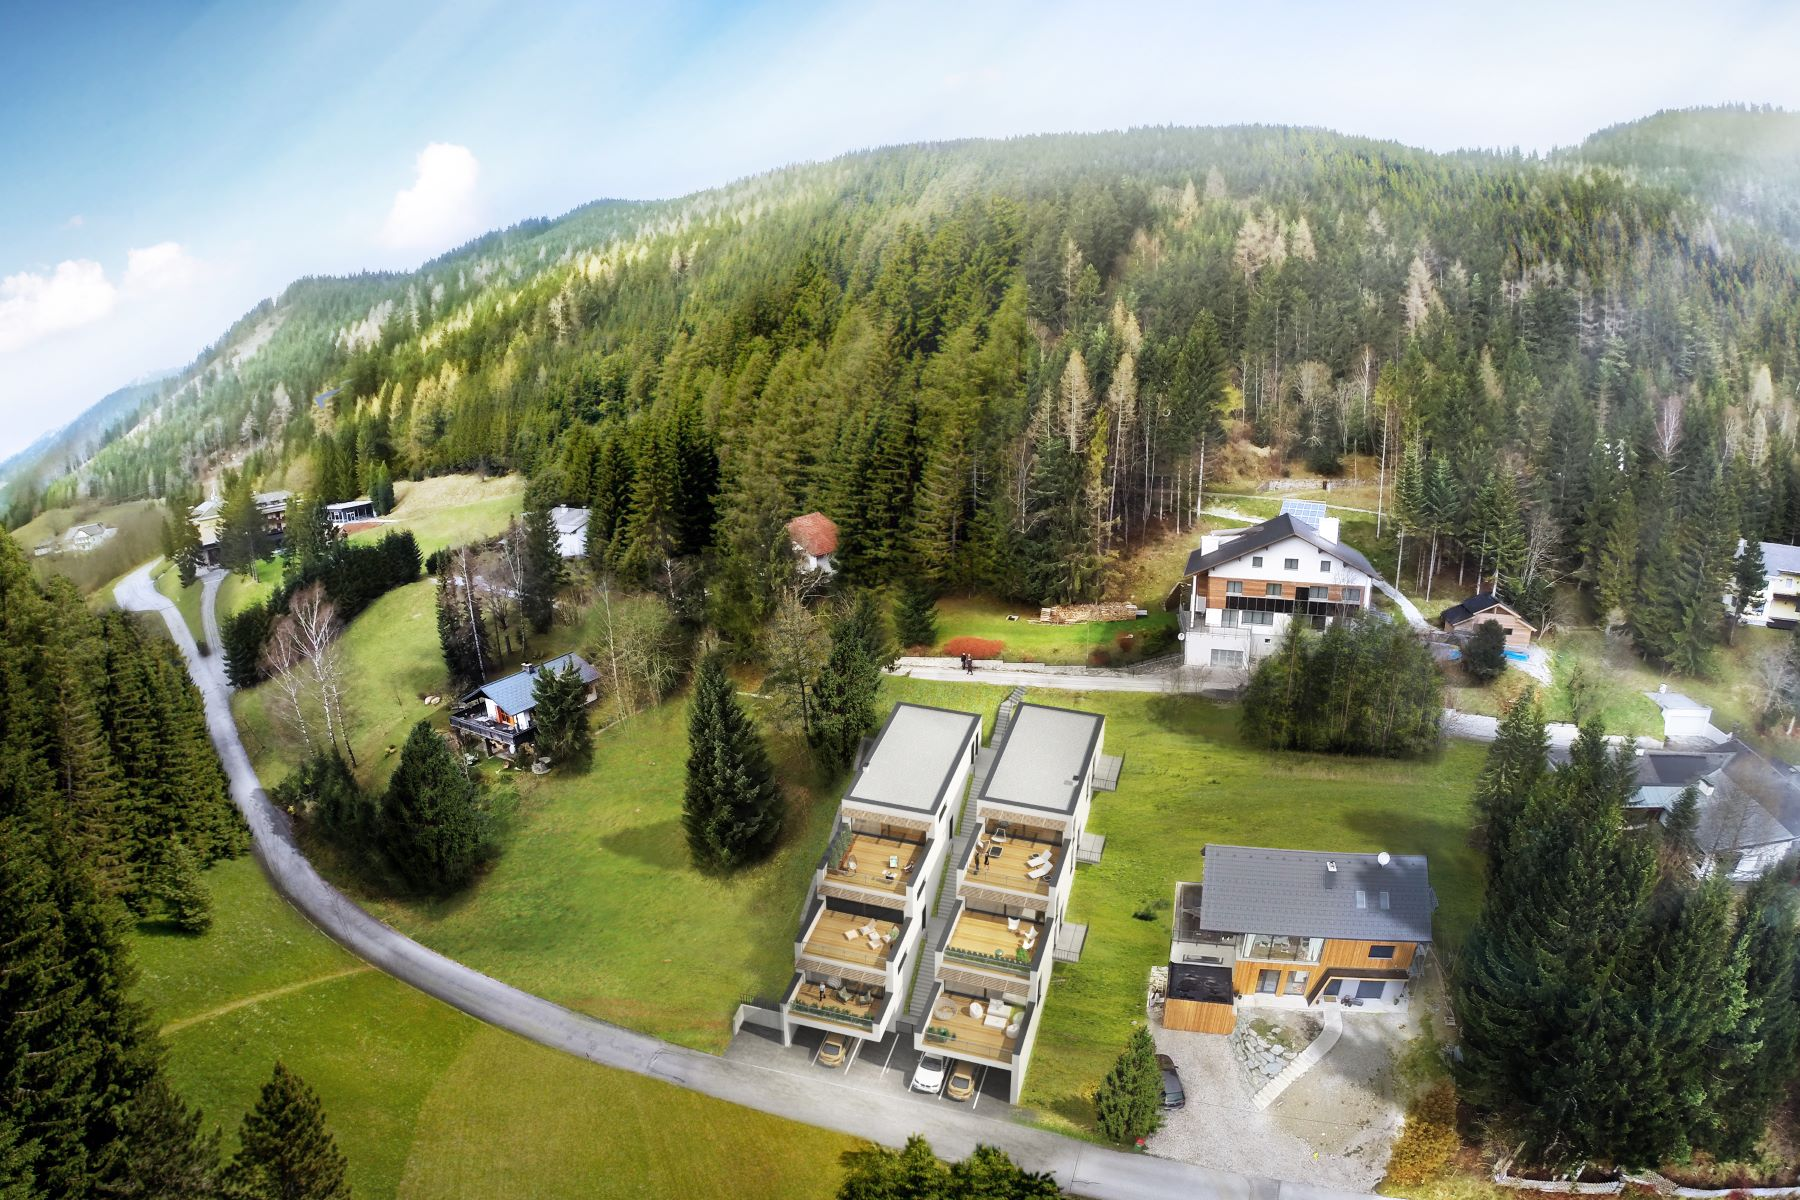 Additional photo for property listing at Mountain Apartments, Austria - Semmering Other Slovakia, Other Areas In Slovakia Slovakia